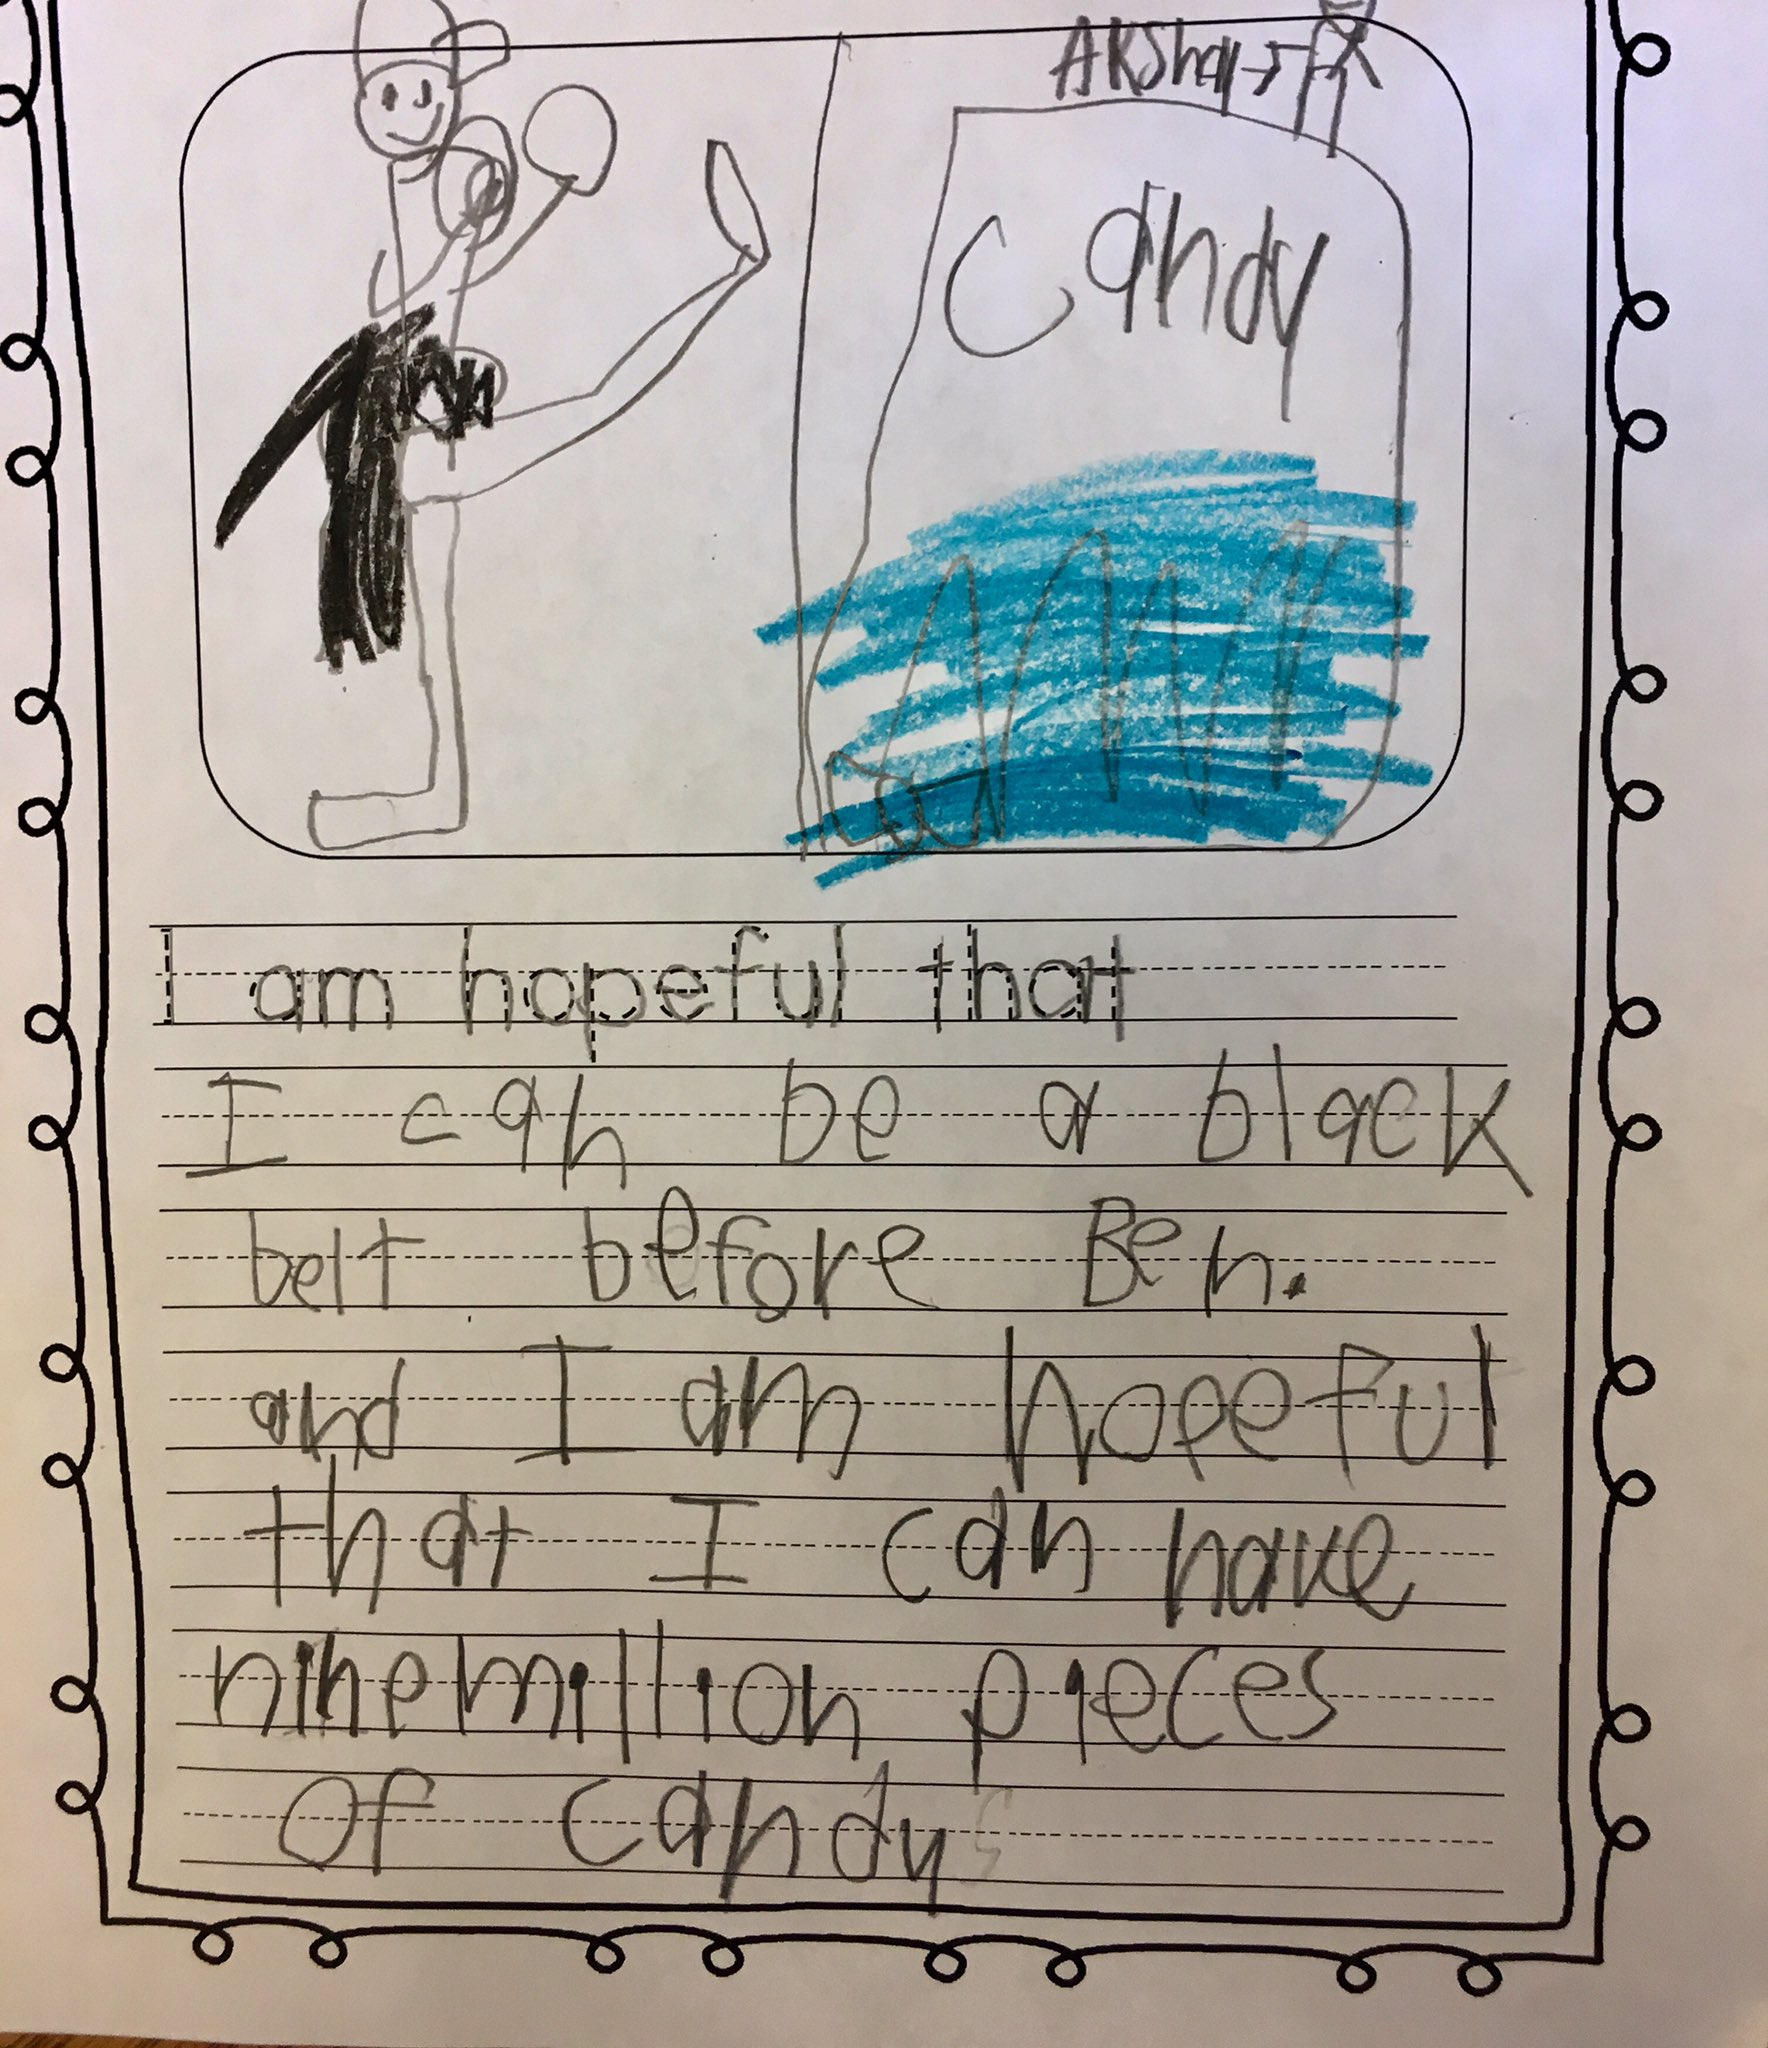 #ImTellingMyKids to be hopeful. Here's a great reminder of the important things in life. 🙂 #firstgrade #hopeful https://t.co/2M3ntYHsXs